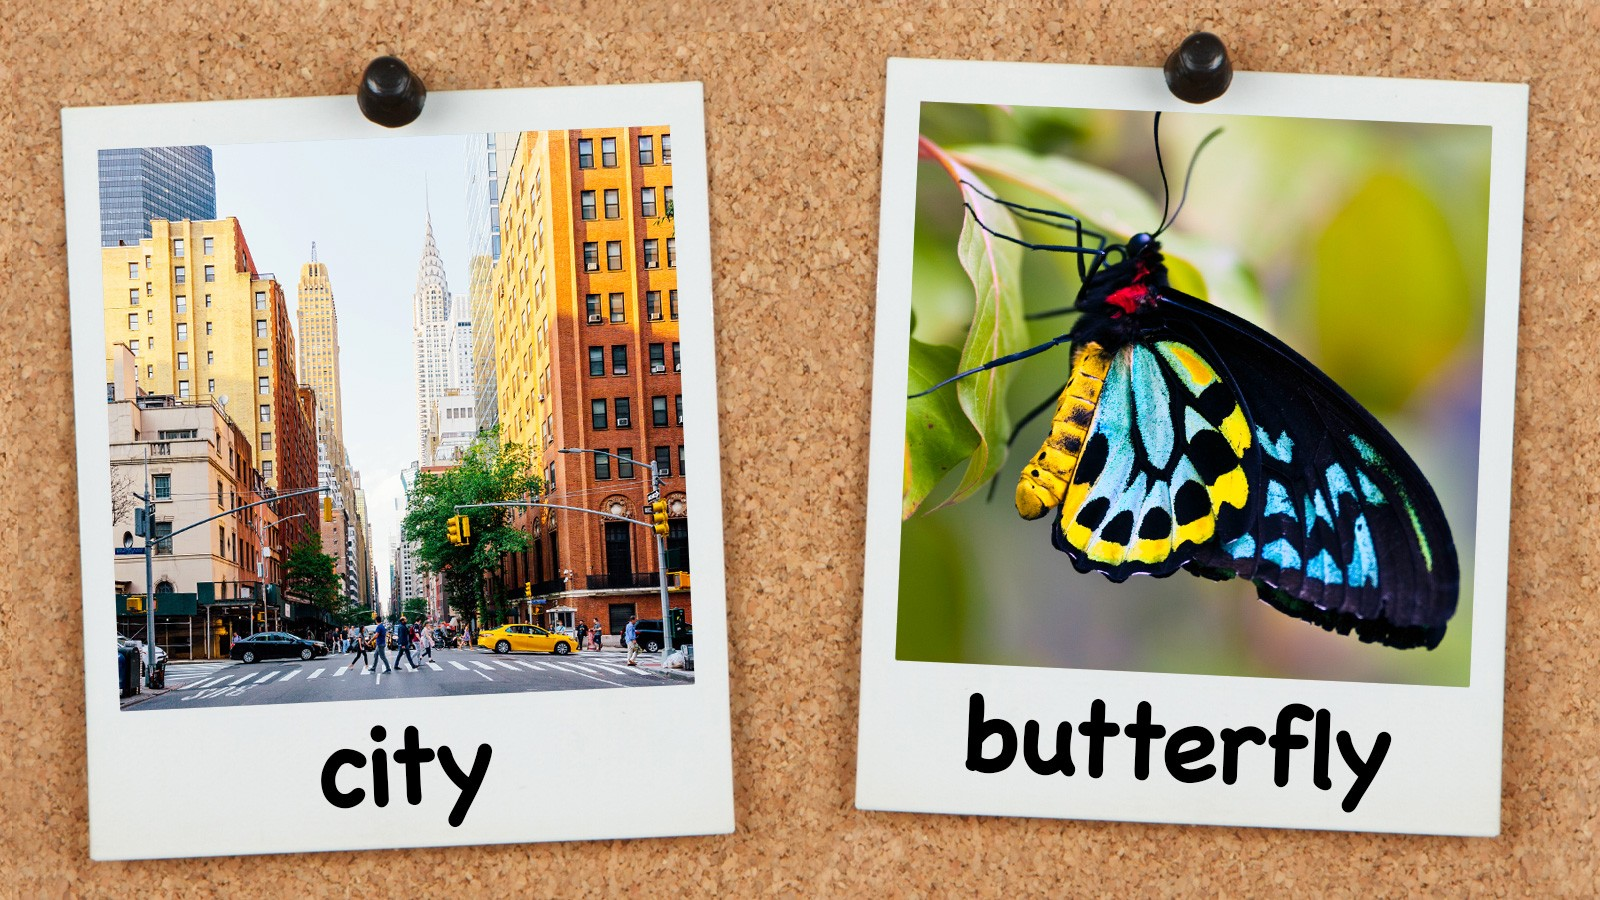 city and butterfly spelling words